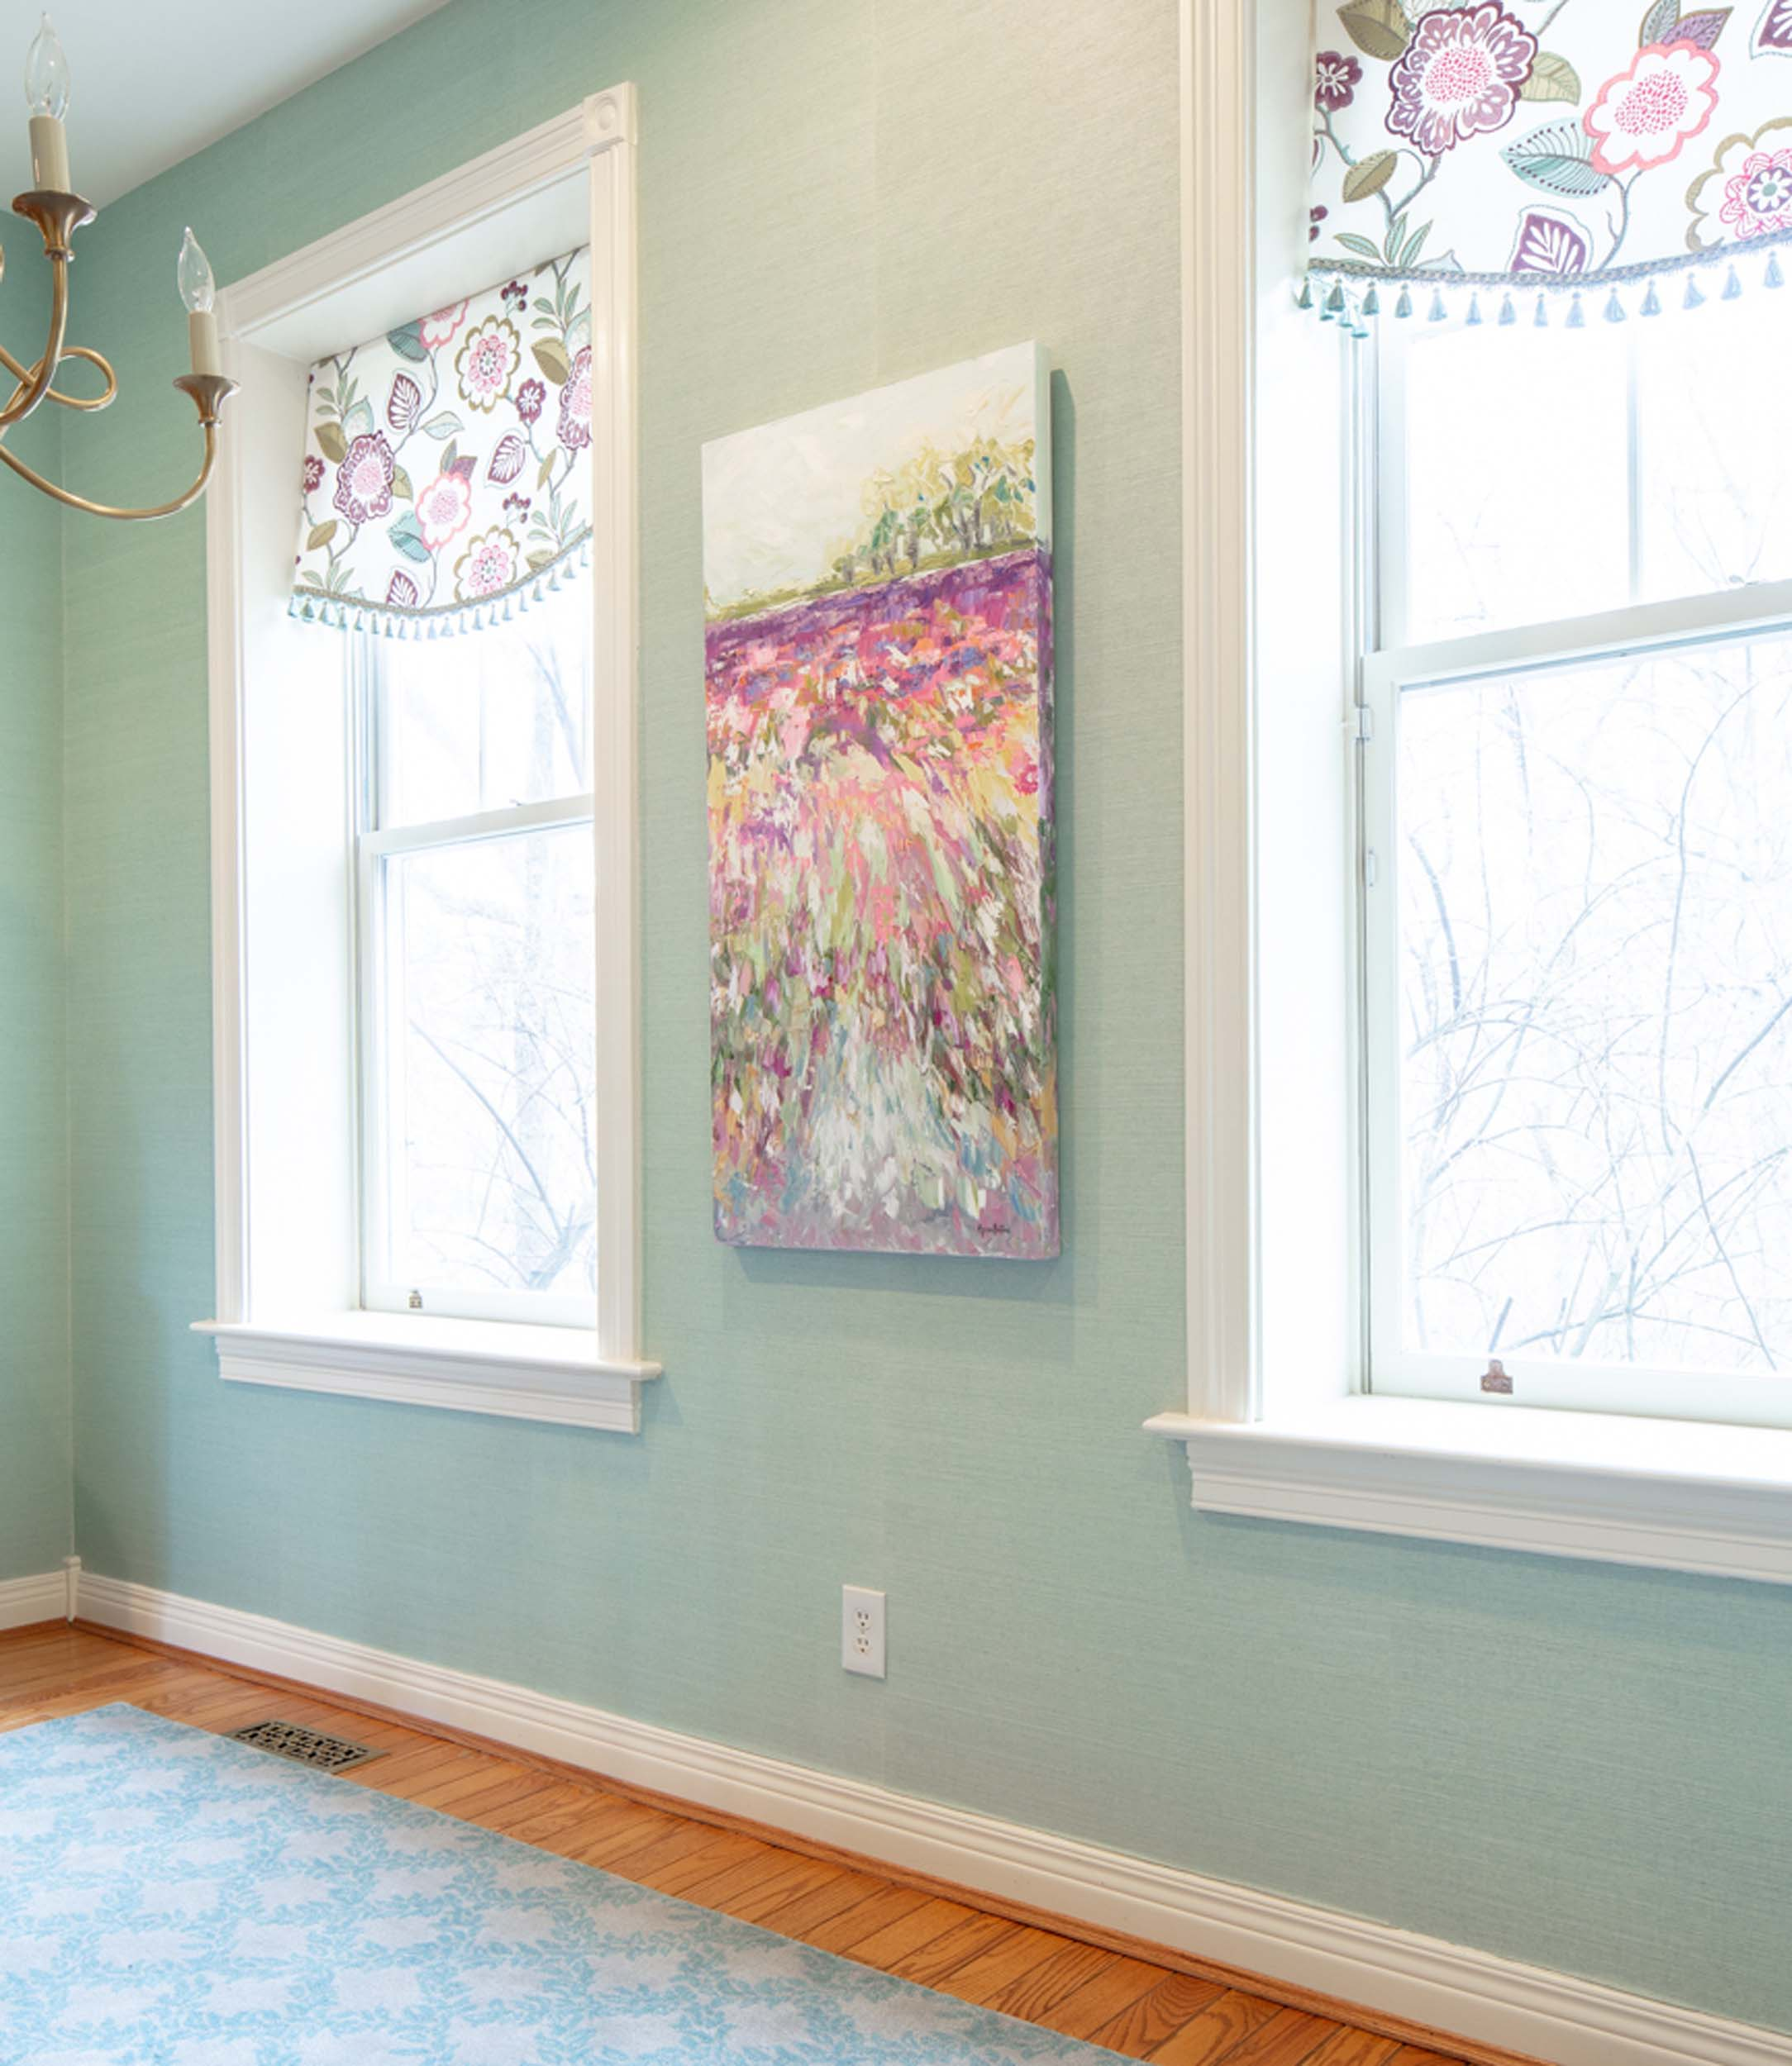 Mint green wall with colorful artwork and two large windows